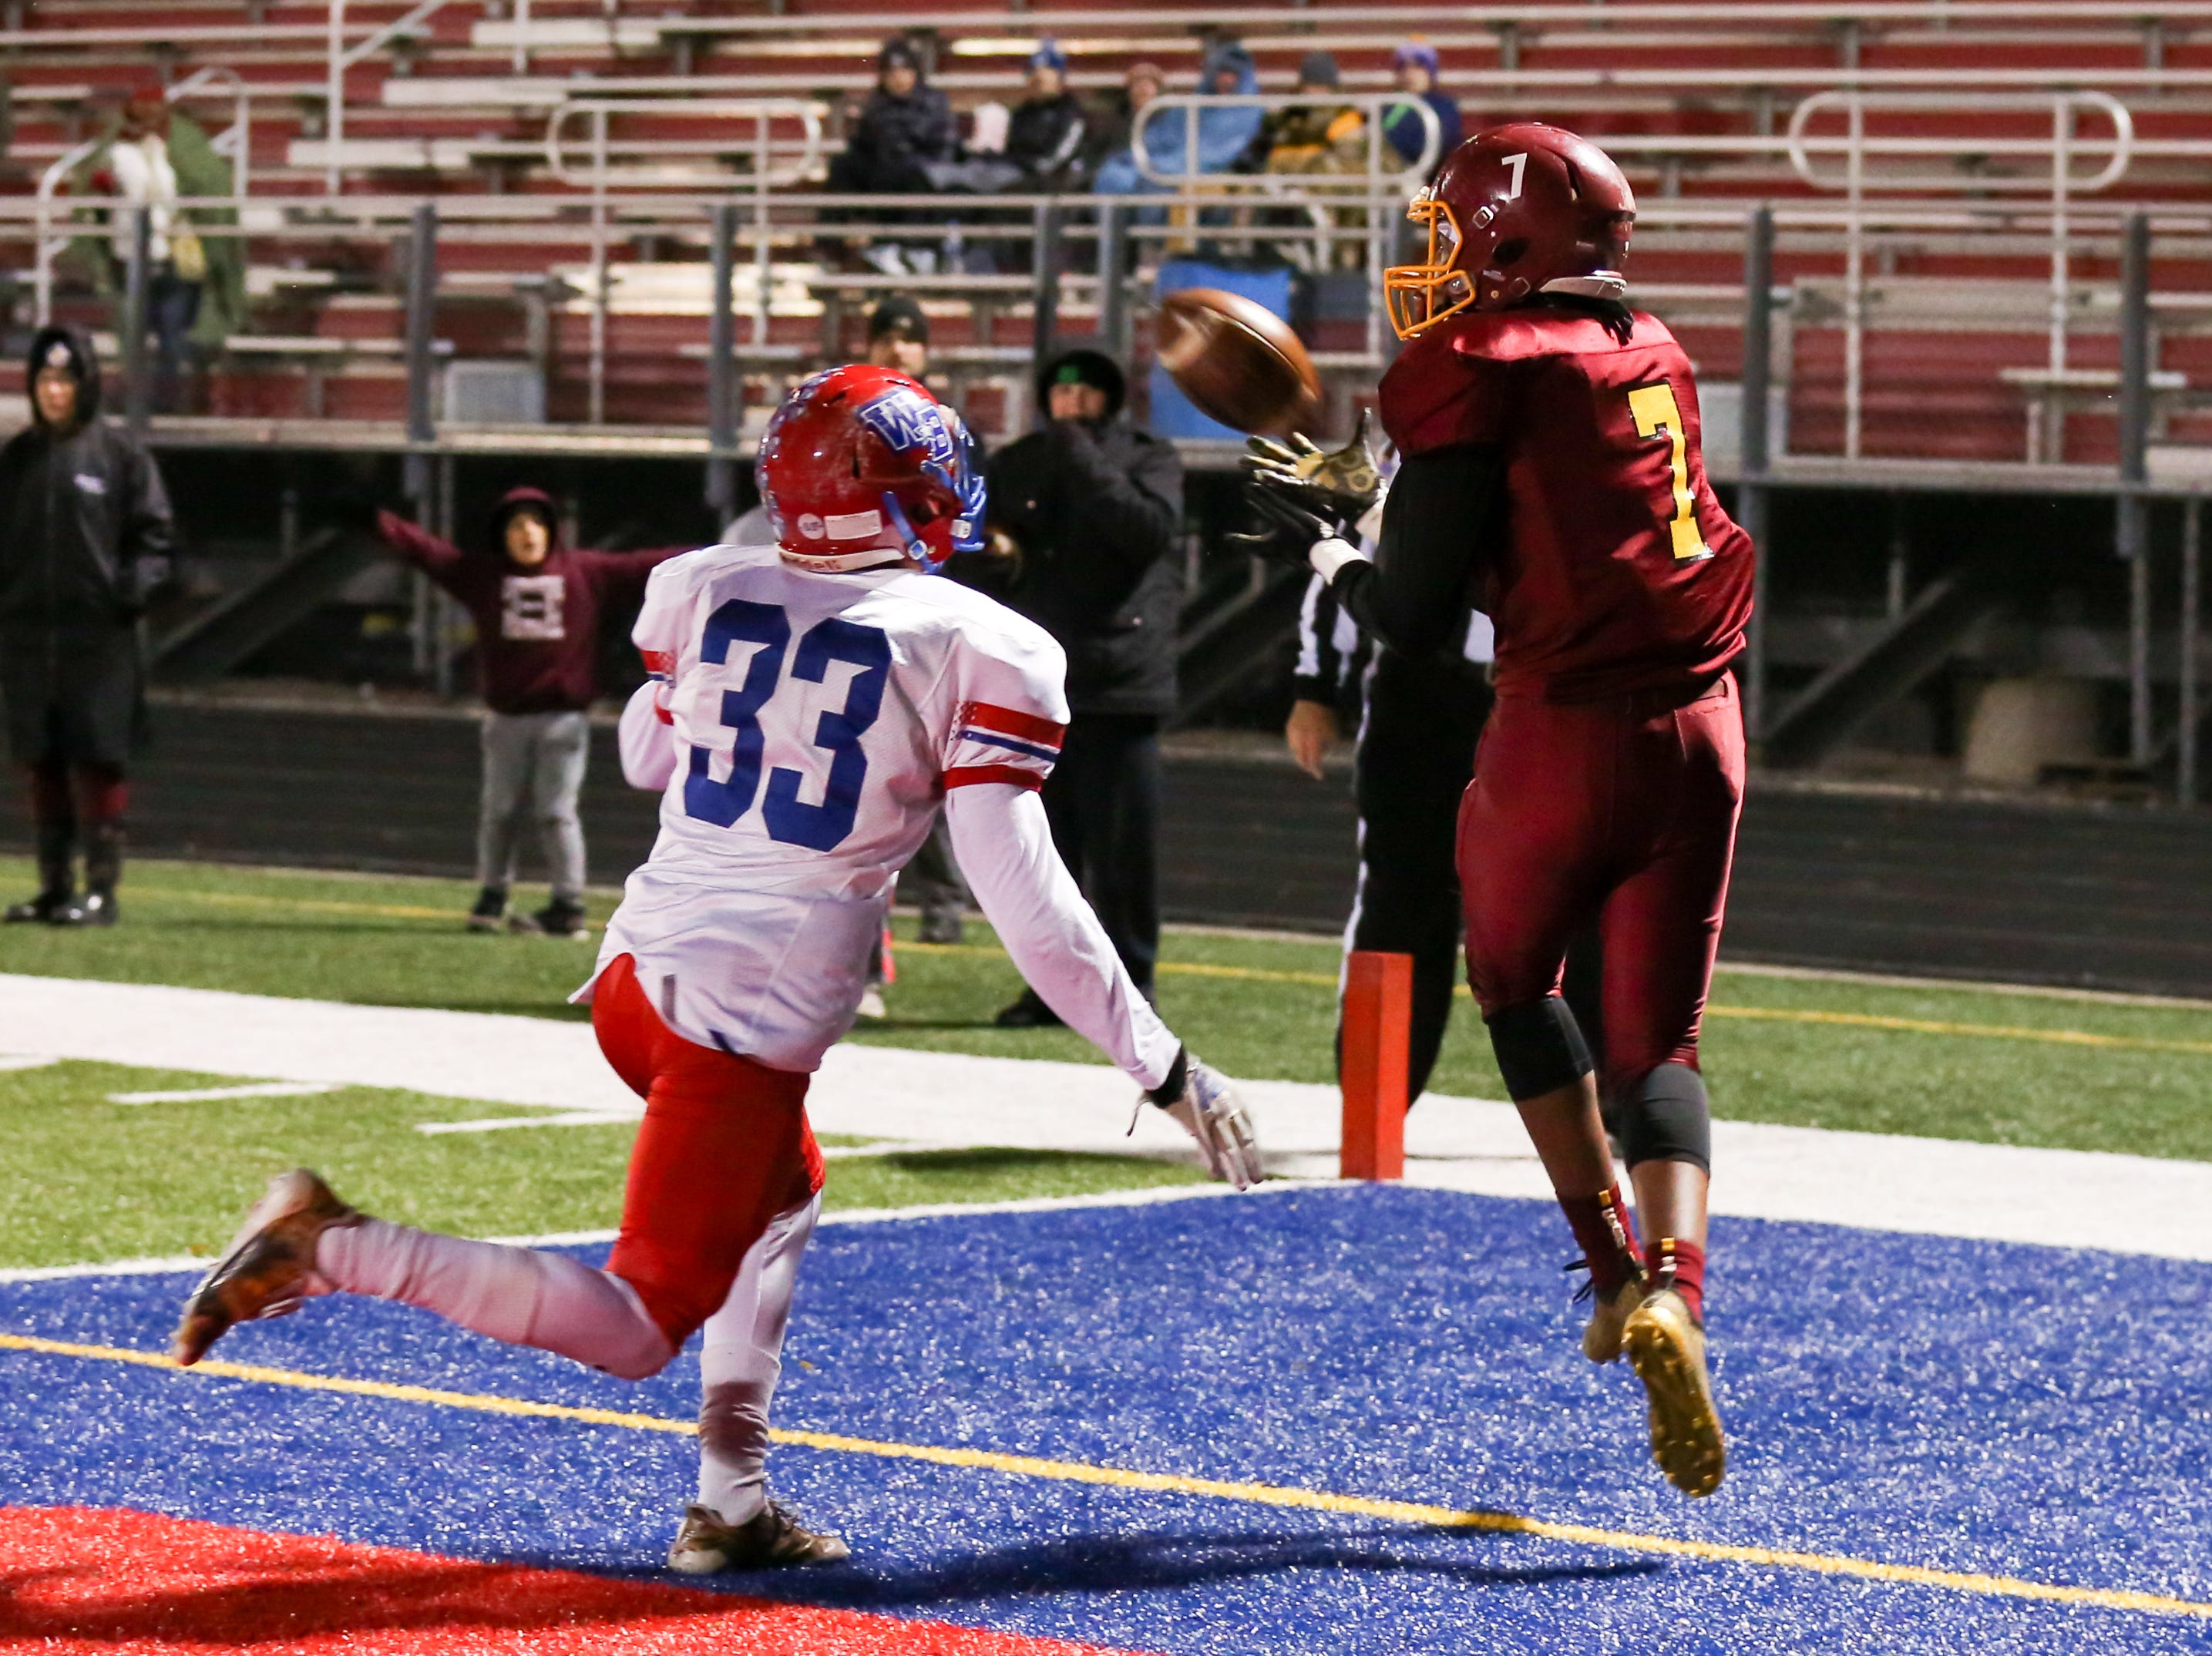 Scecina's Armahn Hillman (7) comes down with a reception and a score during the first half of Indianapolis Scecina vs Western Boone High School varsity football in the Class 2A Regional Championship held at Roncalli High School, Friday, November 9, 2018.